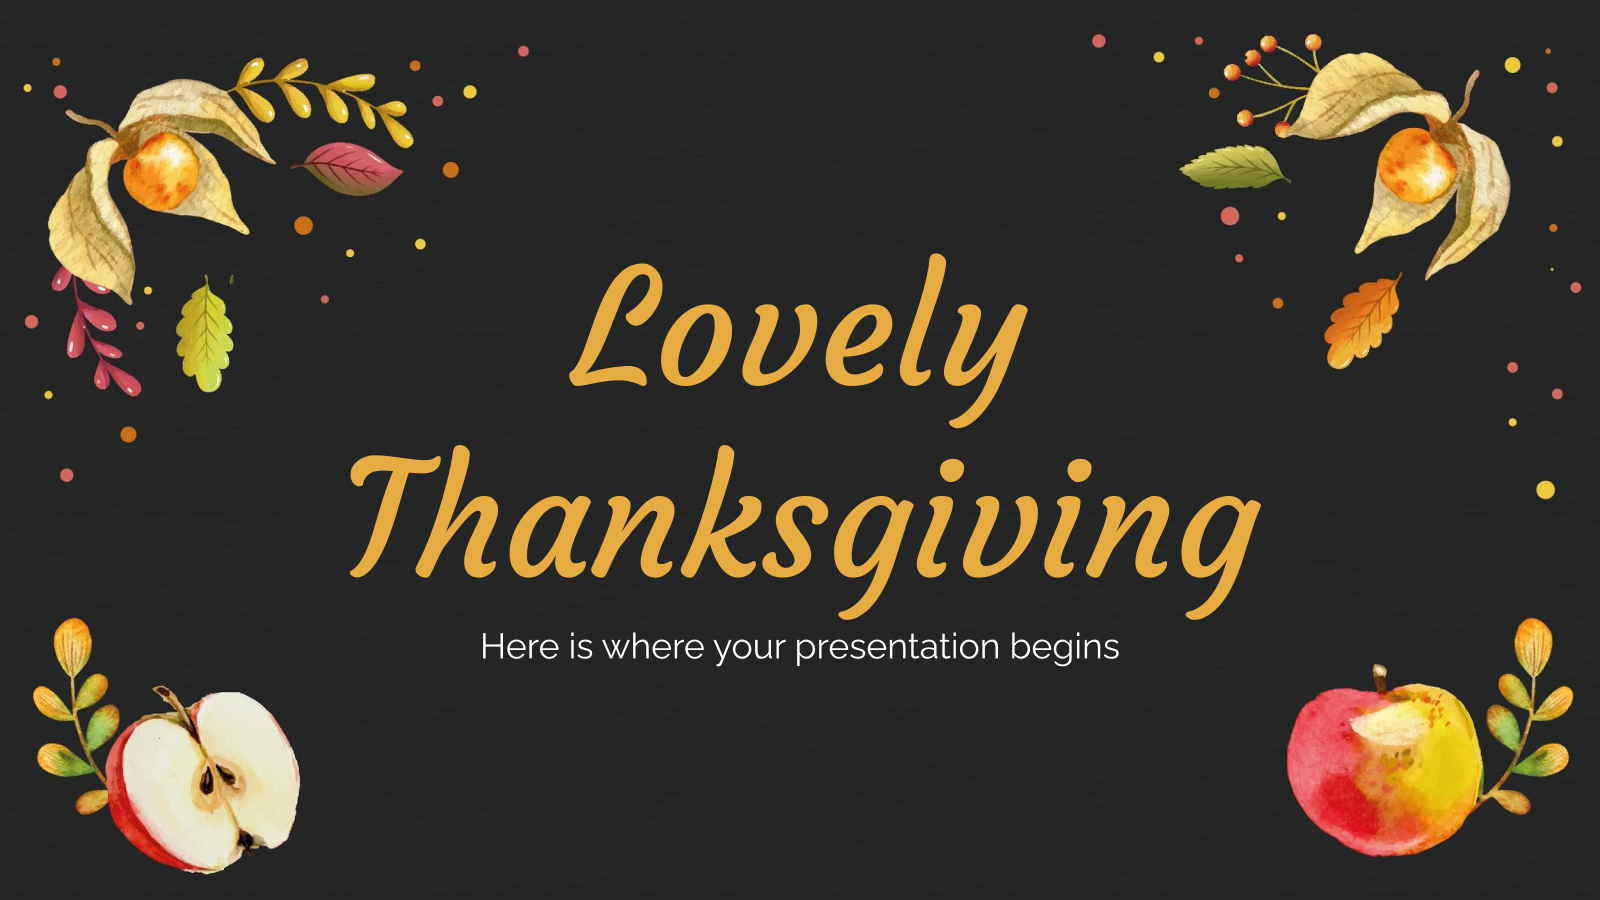 Lovely Thanksgiving presentation template